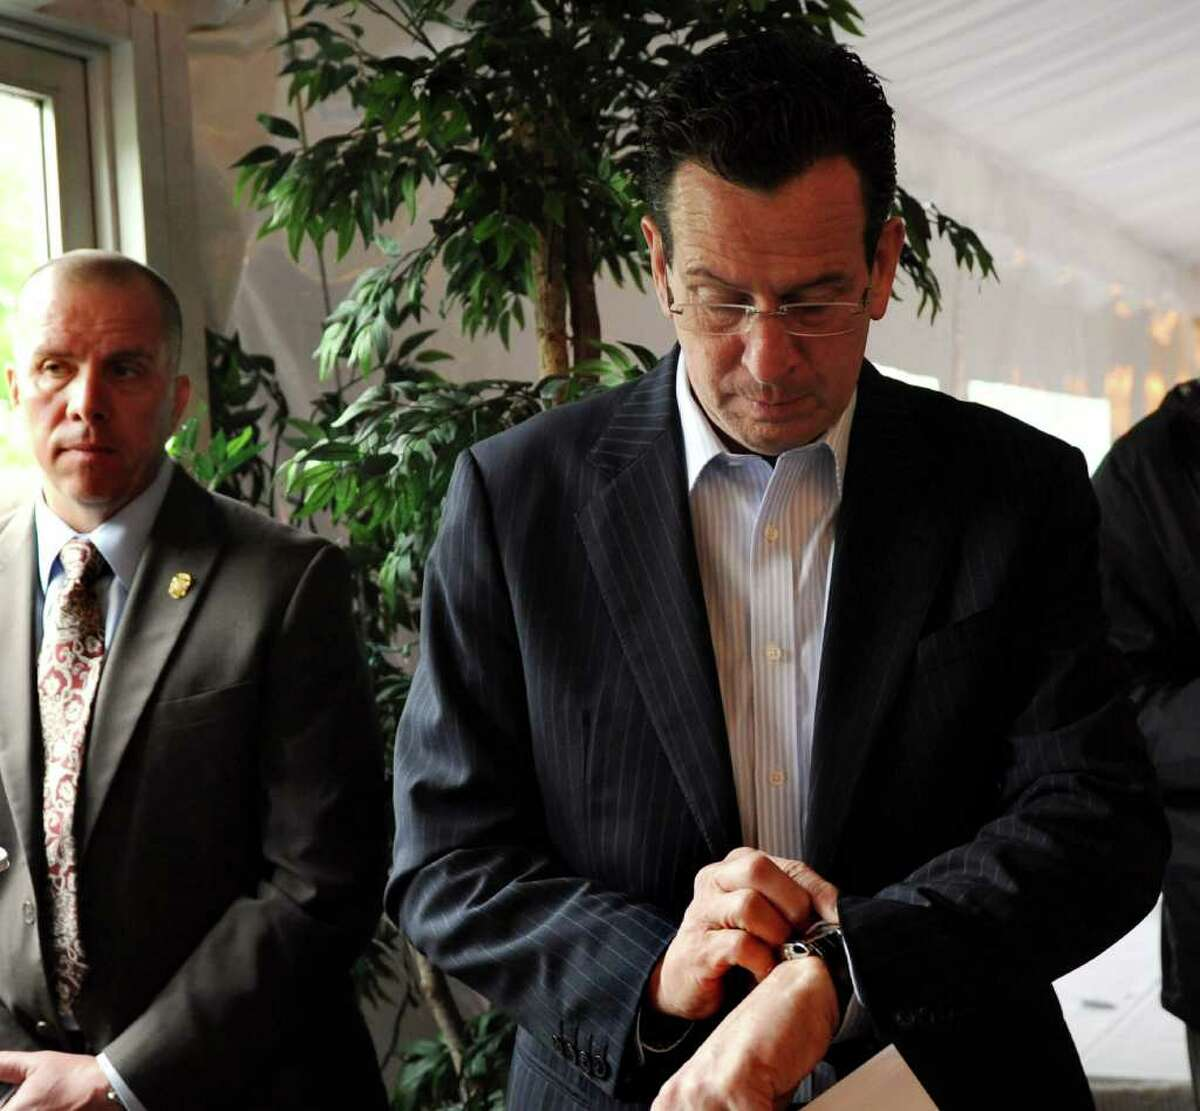 Gov. Dan Malloy at the Travelers Golf Tournament media day in Cromwell, Conn. on Tuesday May 17, 2011.